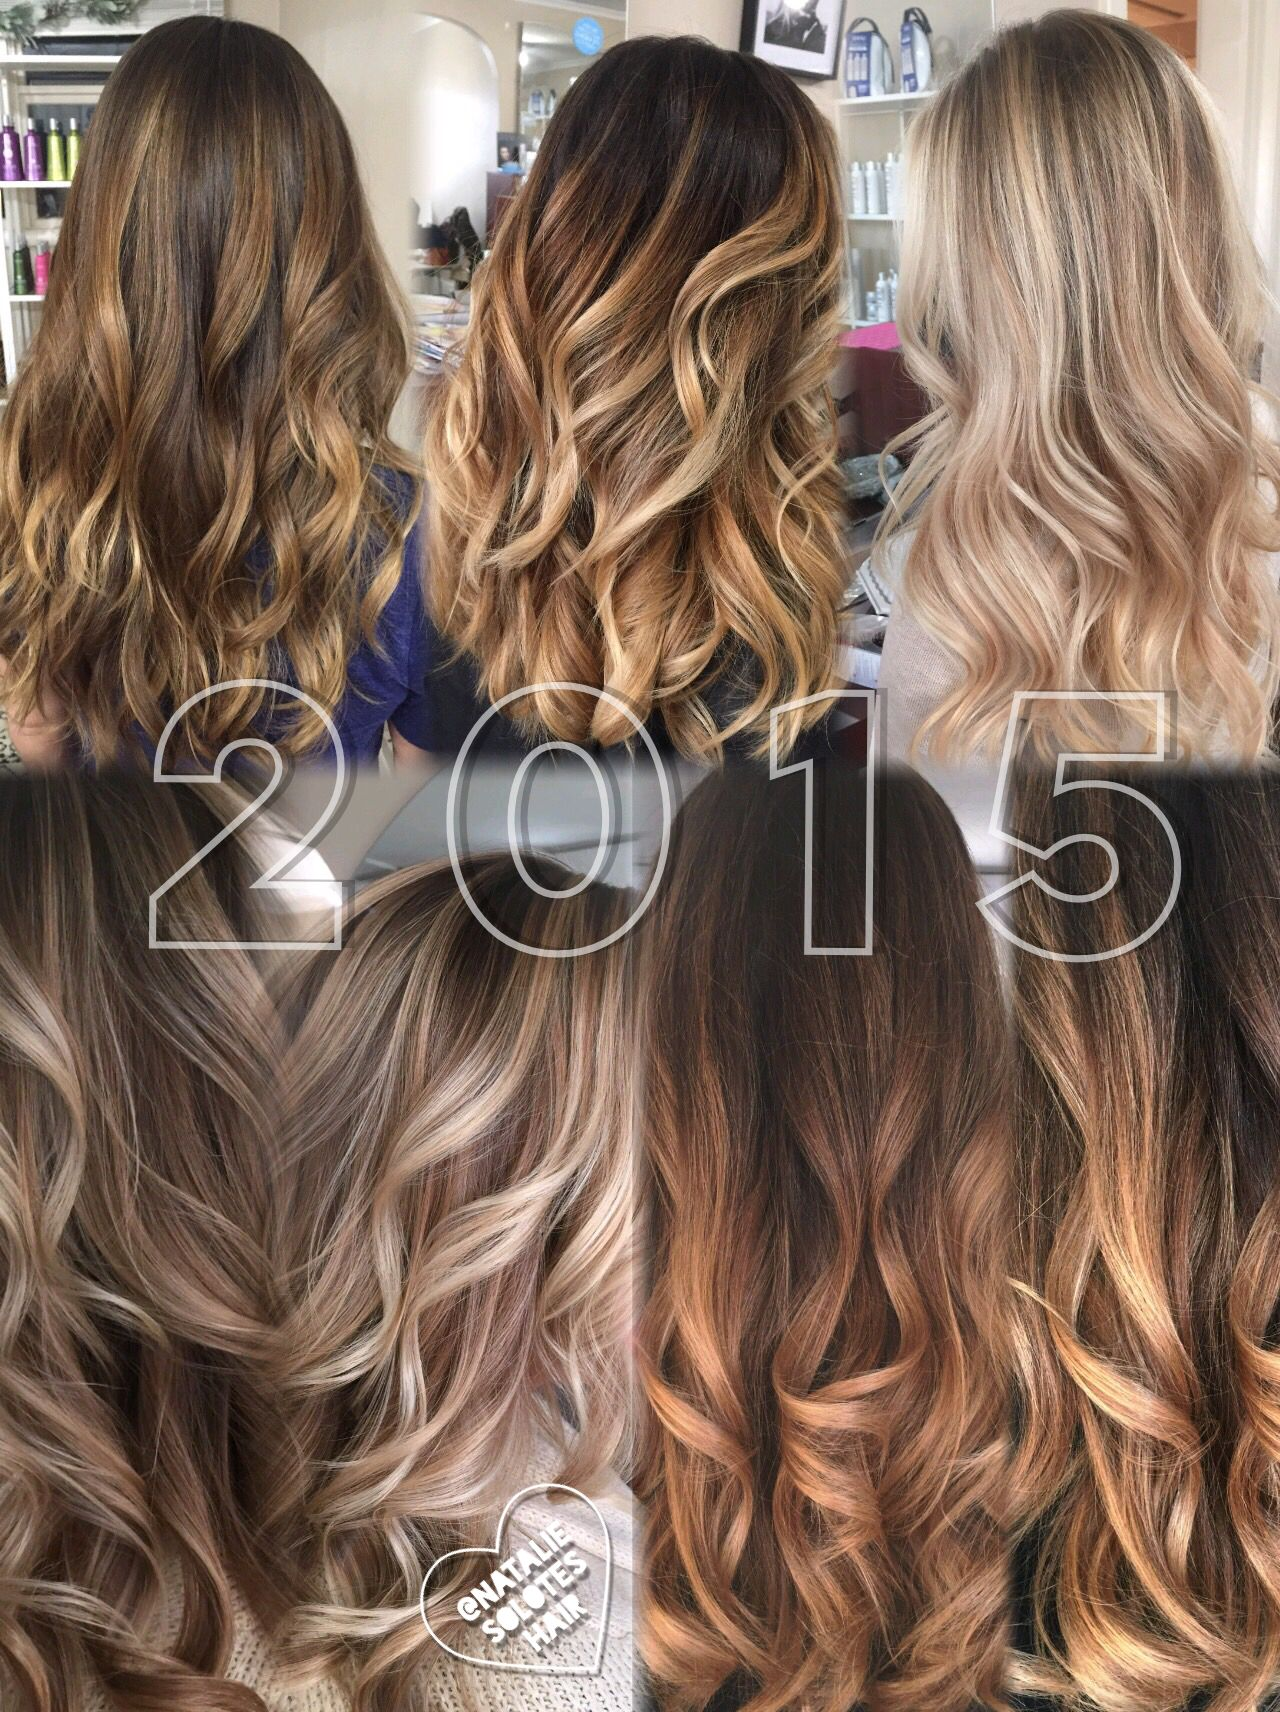 Behind The Chair Ombre Hair Color Goals Lived In Haircolor And Haircut Balayage